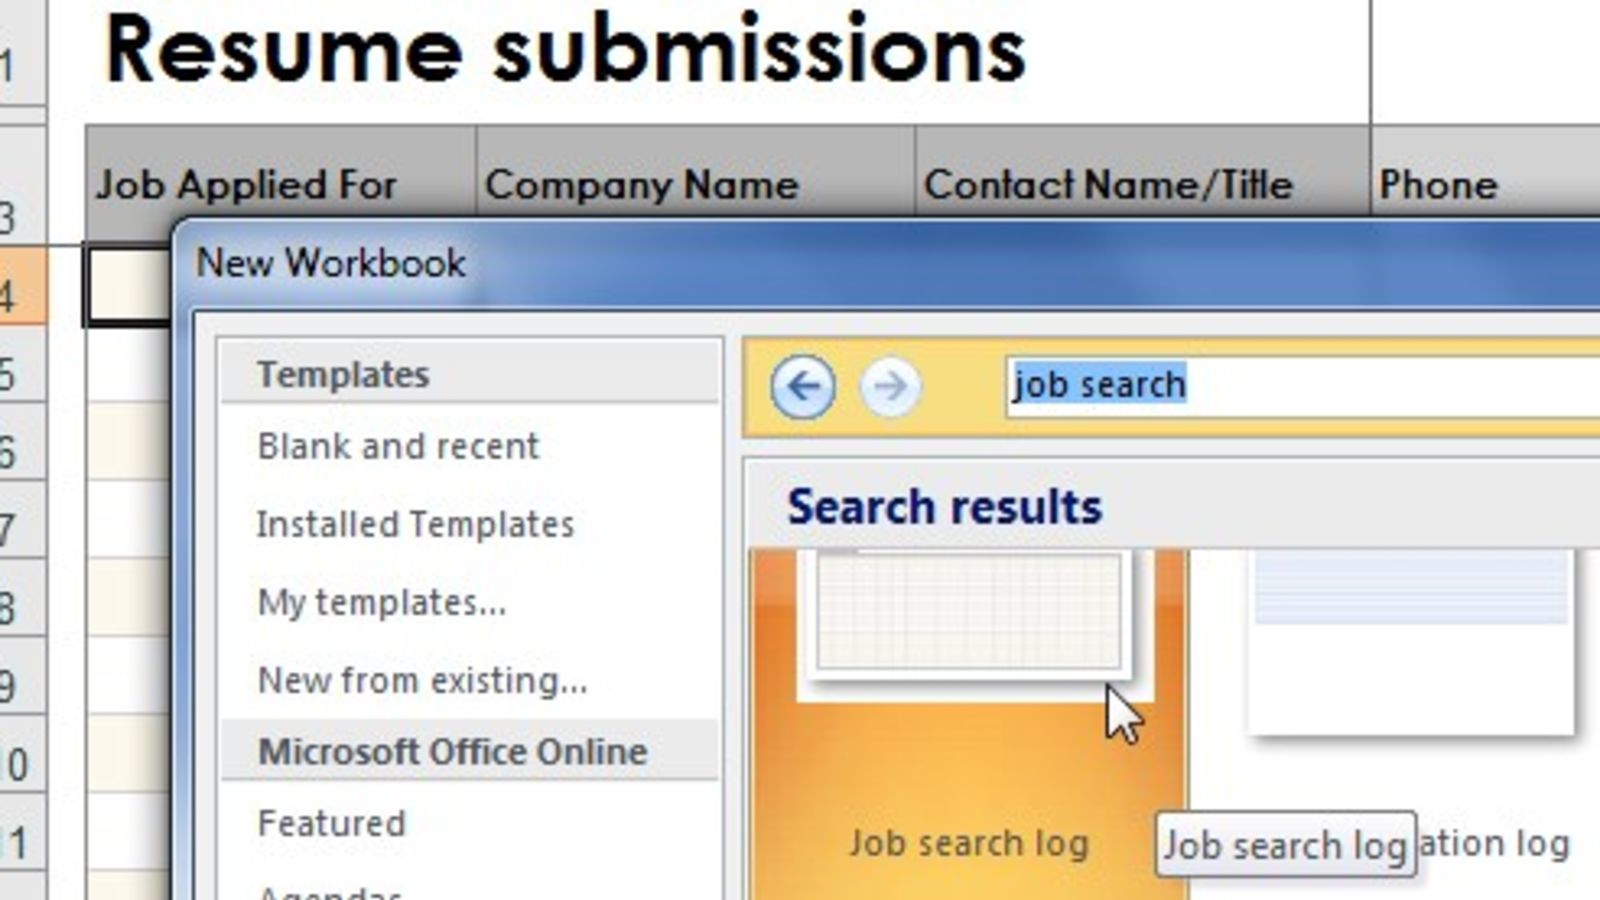 It's just a photo of Sly Printable Job Search Log